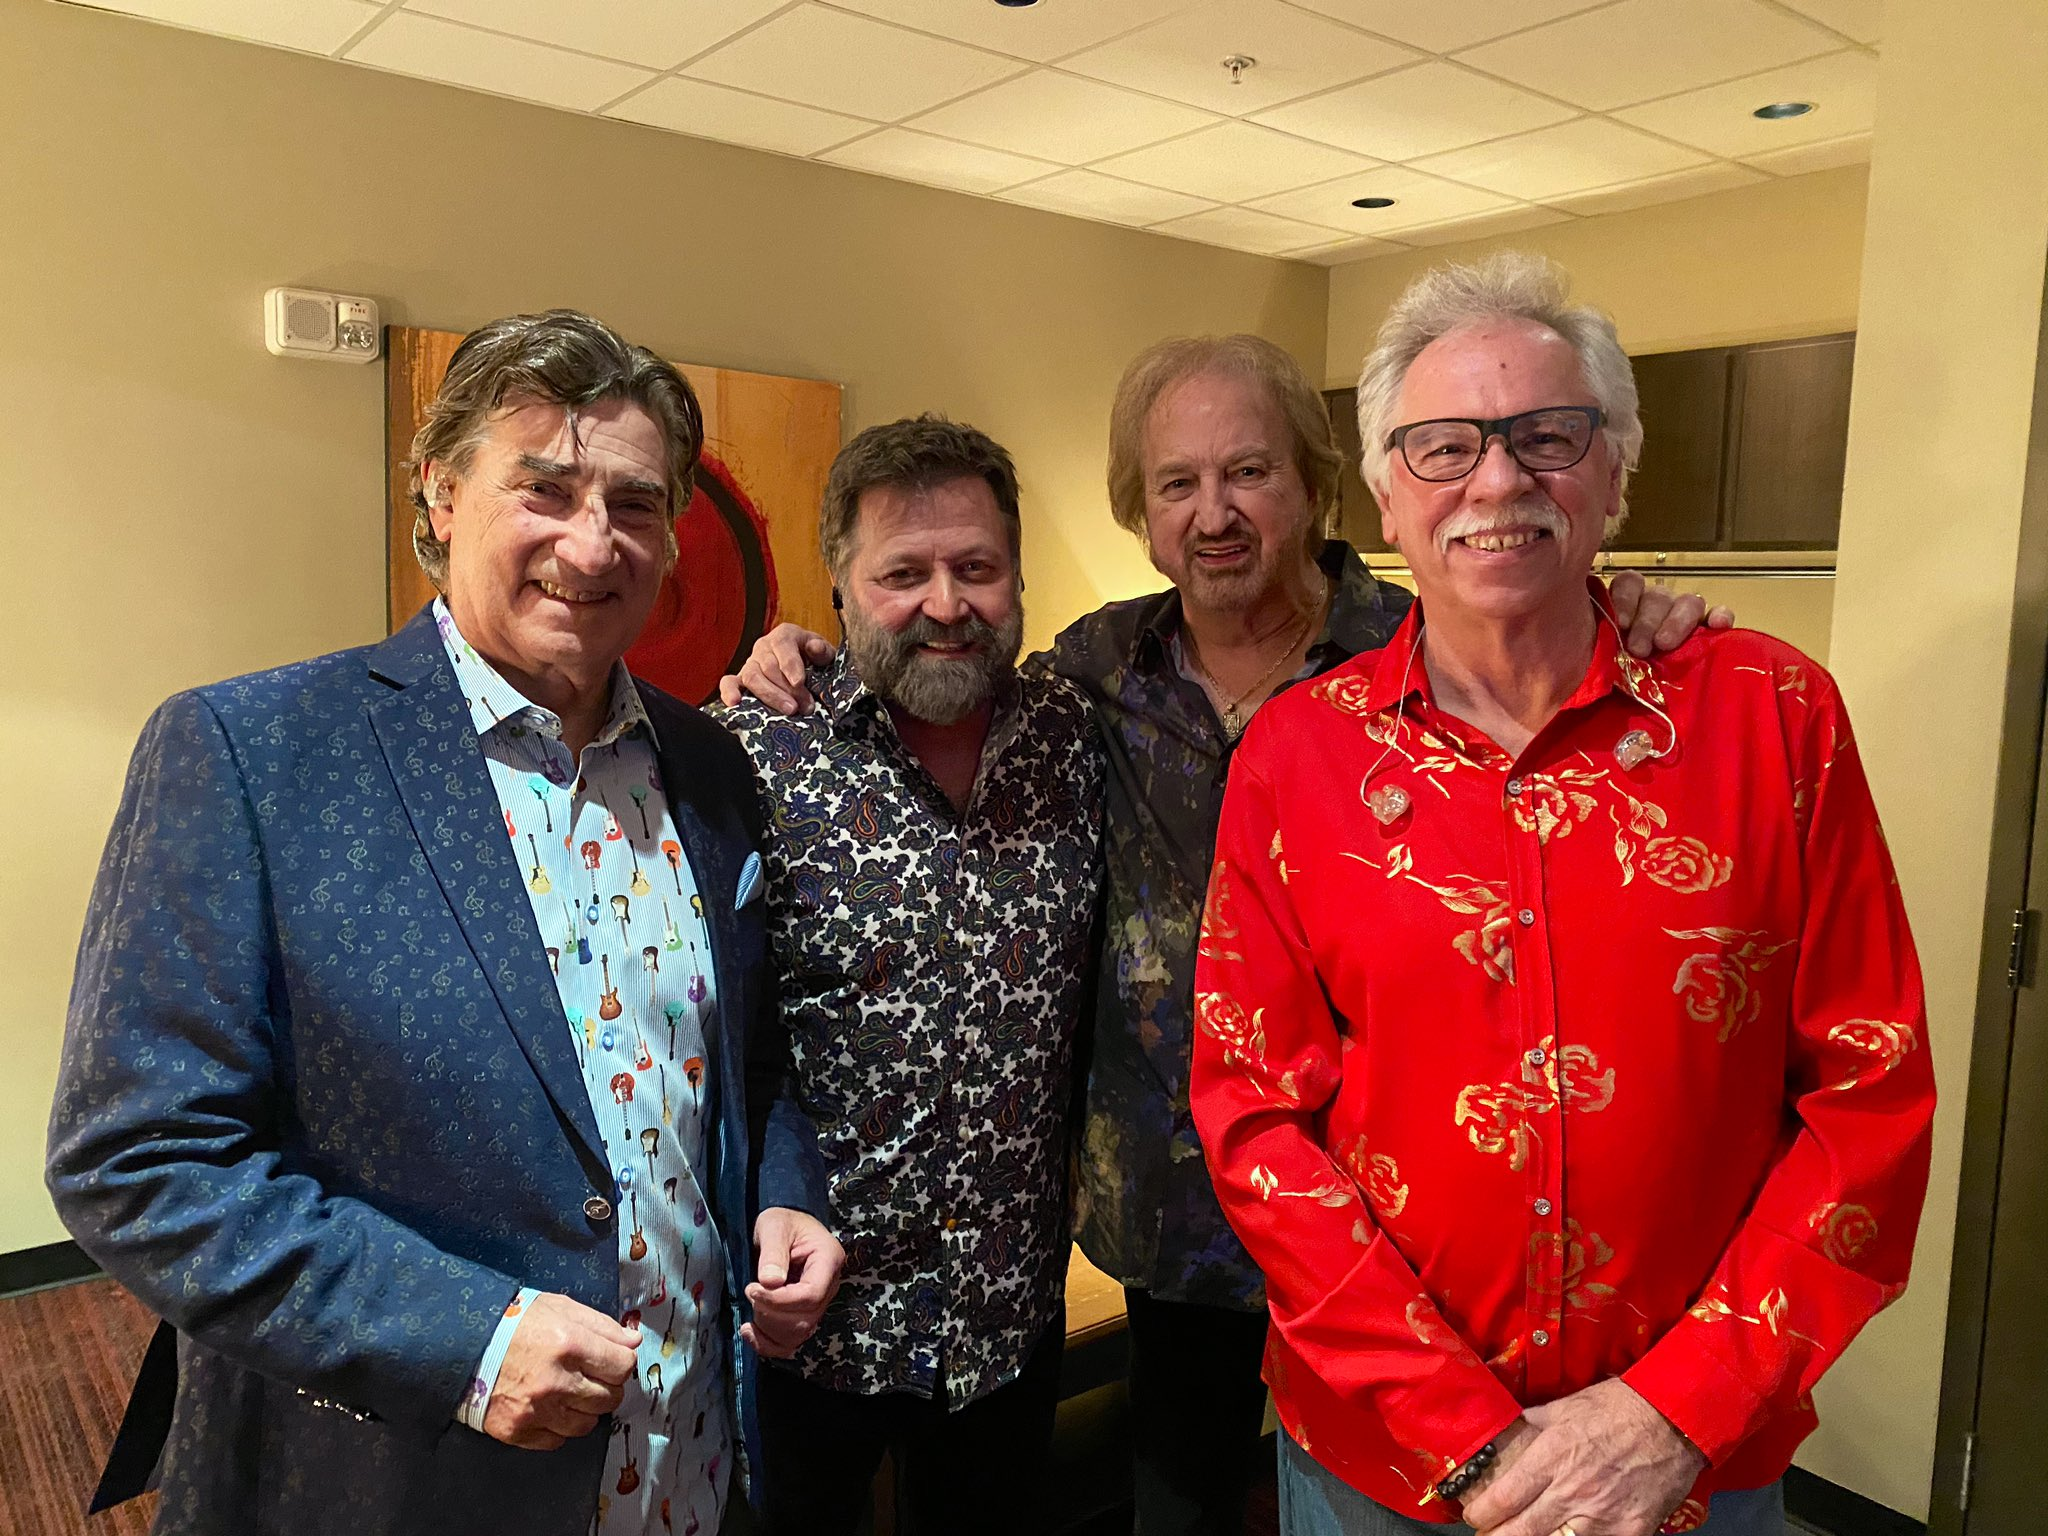 This is your Oak Ridge Boys tonight .... thank you @michaelsykes121 for being here ... @DUANEALLEN and @MichaelGreen77 just led us in prayer that our show would go well and  @wlgolden will be feeling much better ... AMEN!!!! Let's SING! https://t.co/u8x3e5jeFF